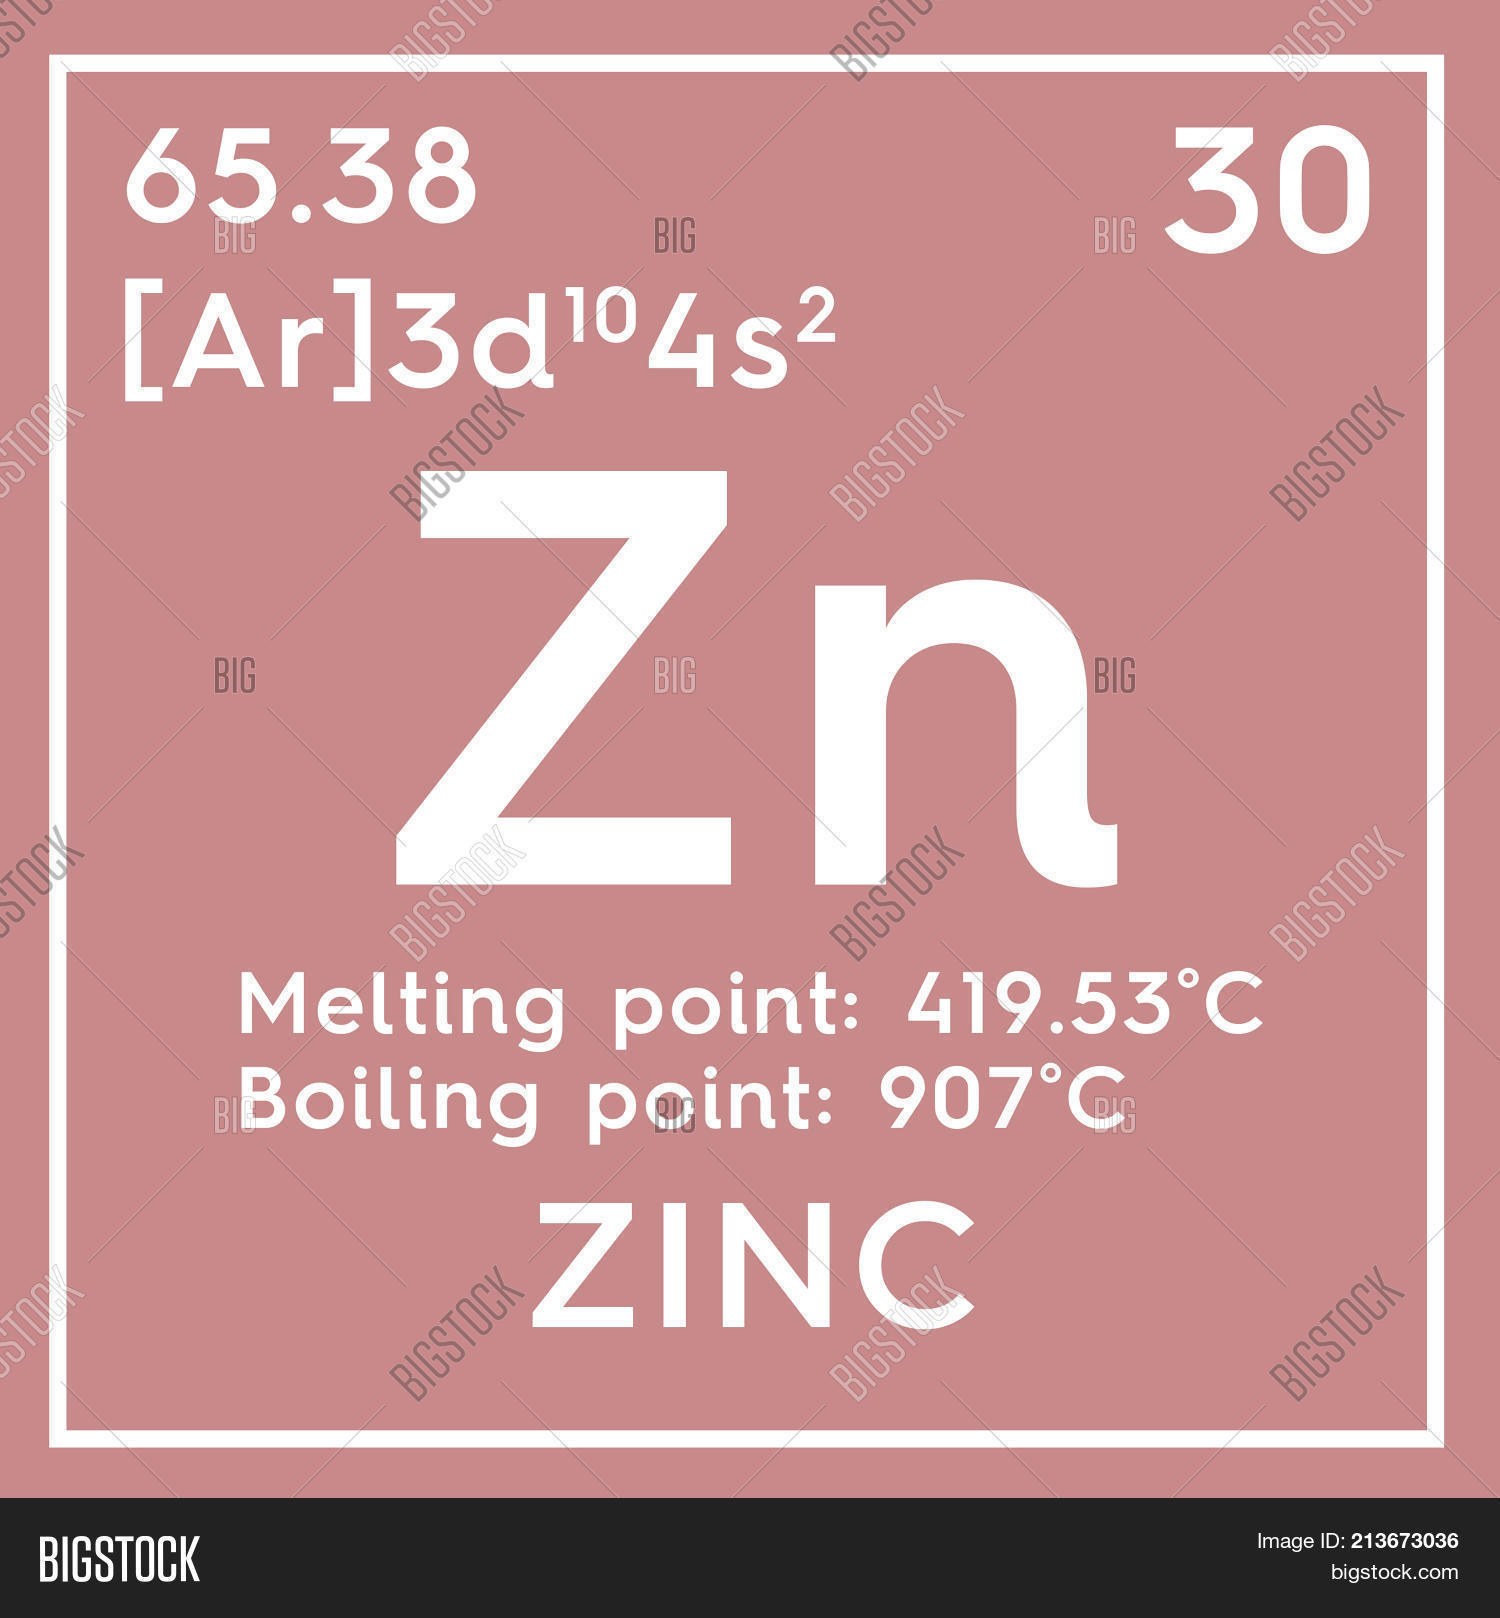 Zinc periodic table information elcho table zinc transition metals chemical element of mendeleev s periodic table ilration urtaz Images